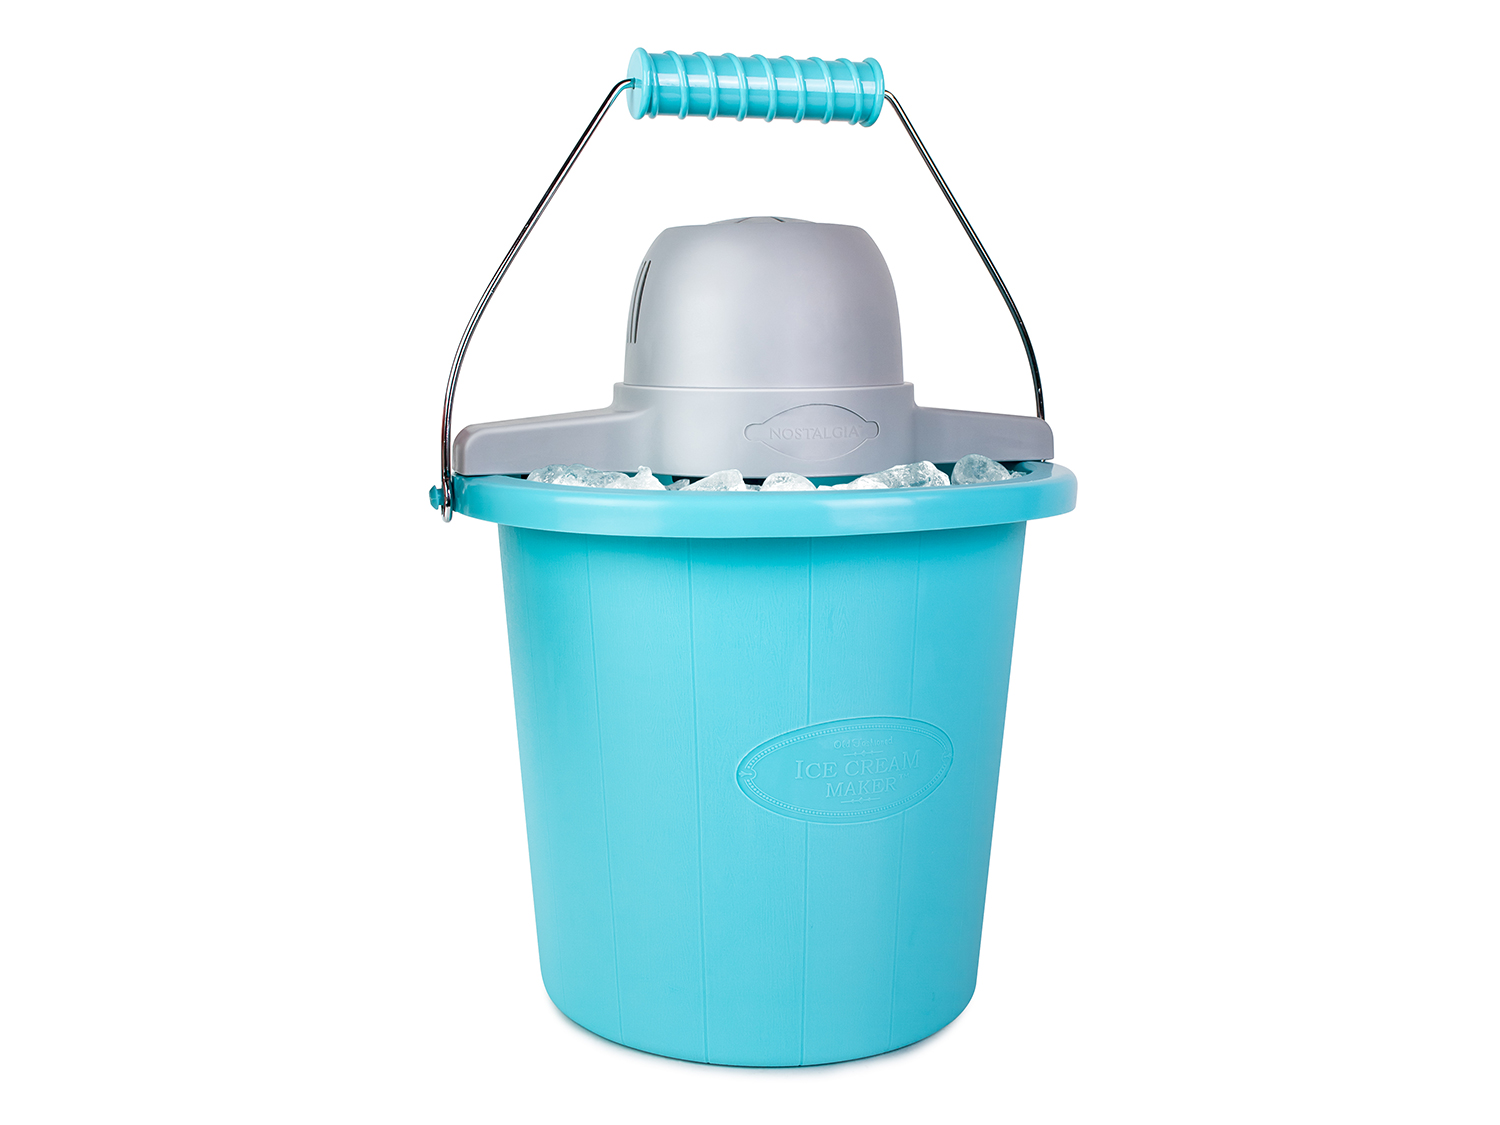 Nostalgia Electrics 4-Quart Blue Bucket Electric Ice Cream Maker